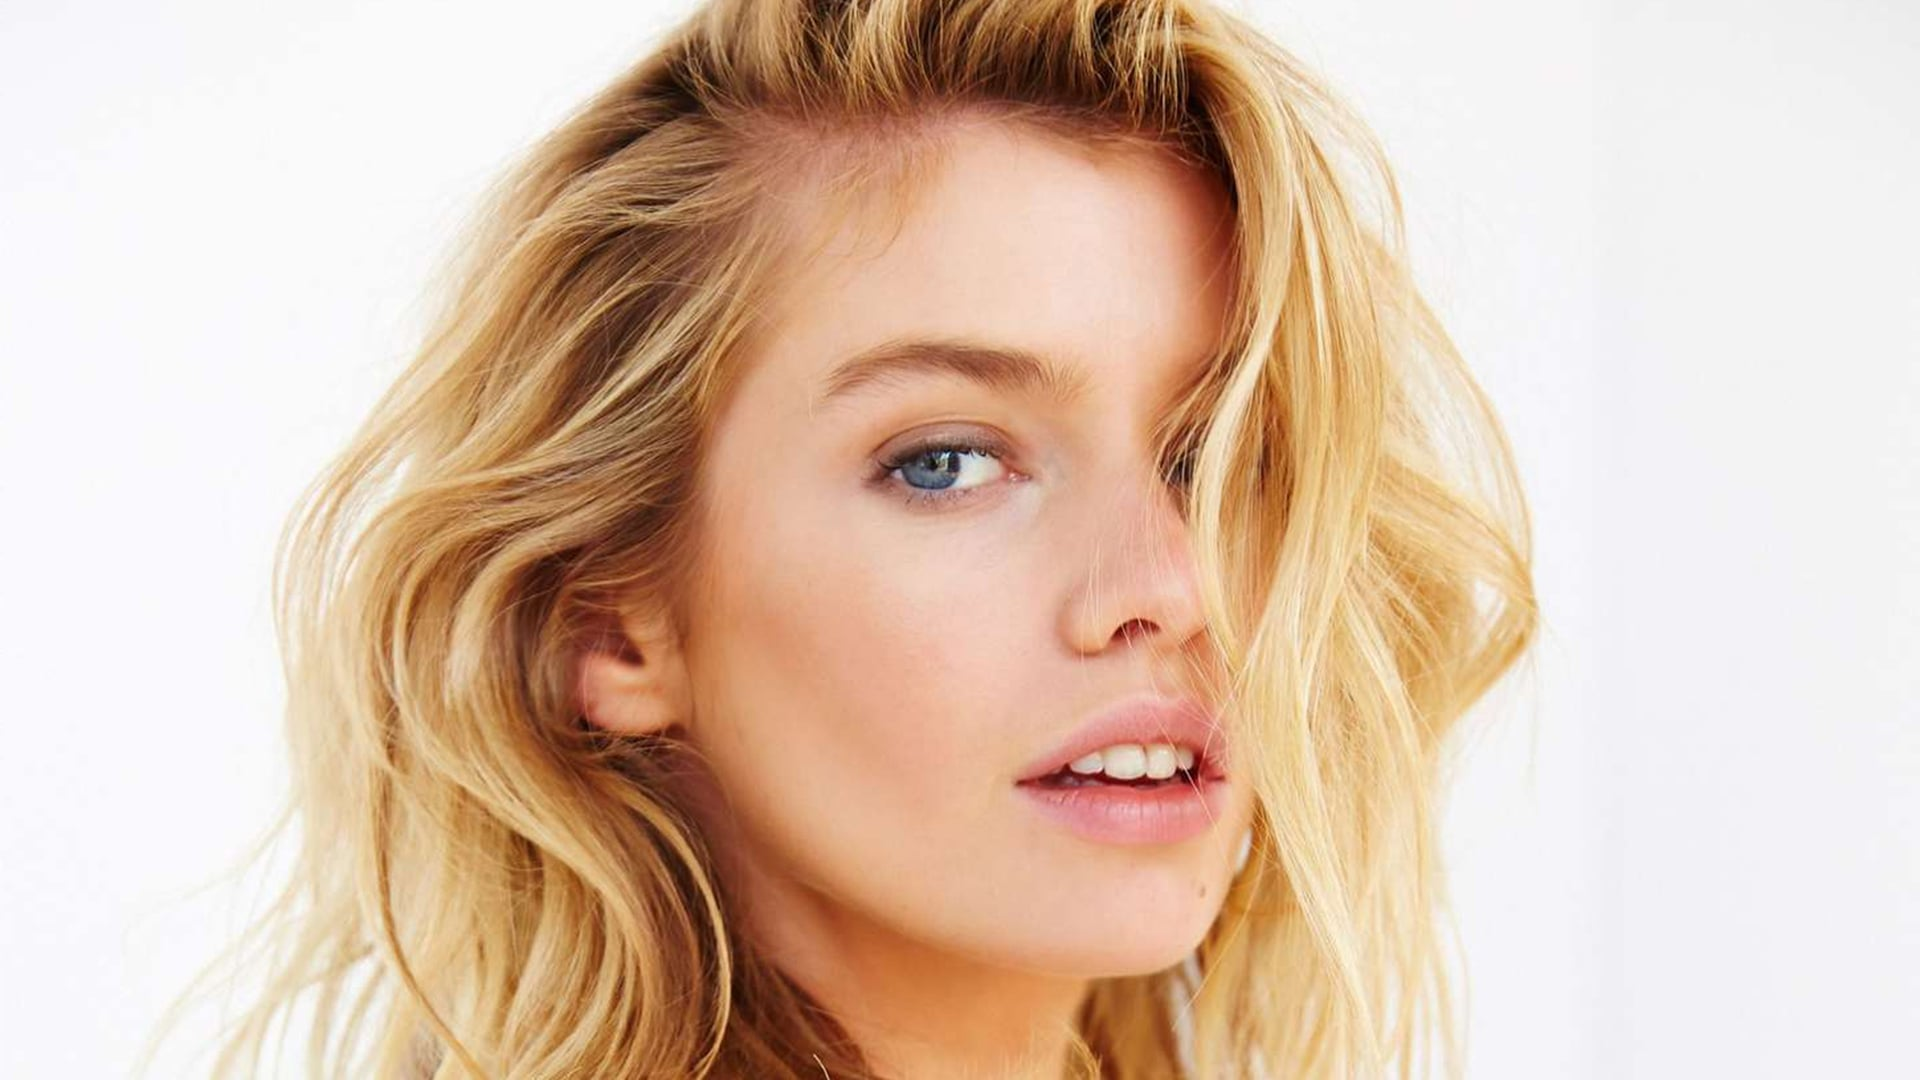 Stella Maxwell HD Wallpapers of High Quality Download Anna Paquin 2015